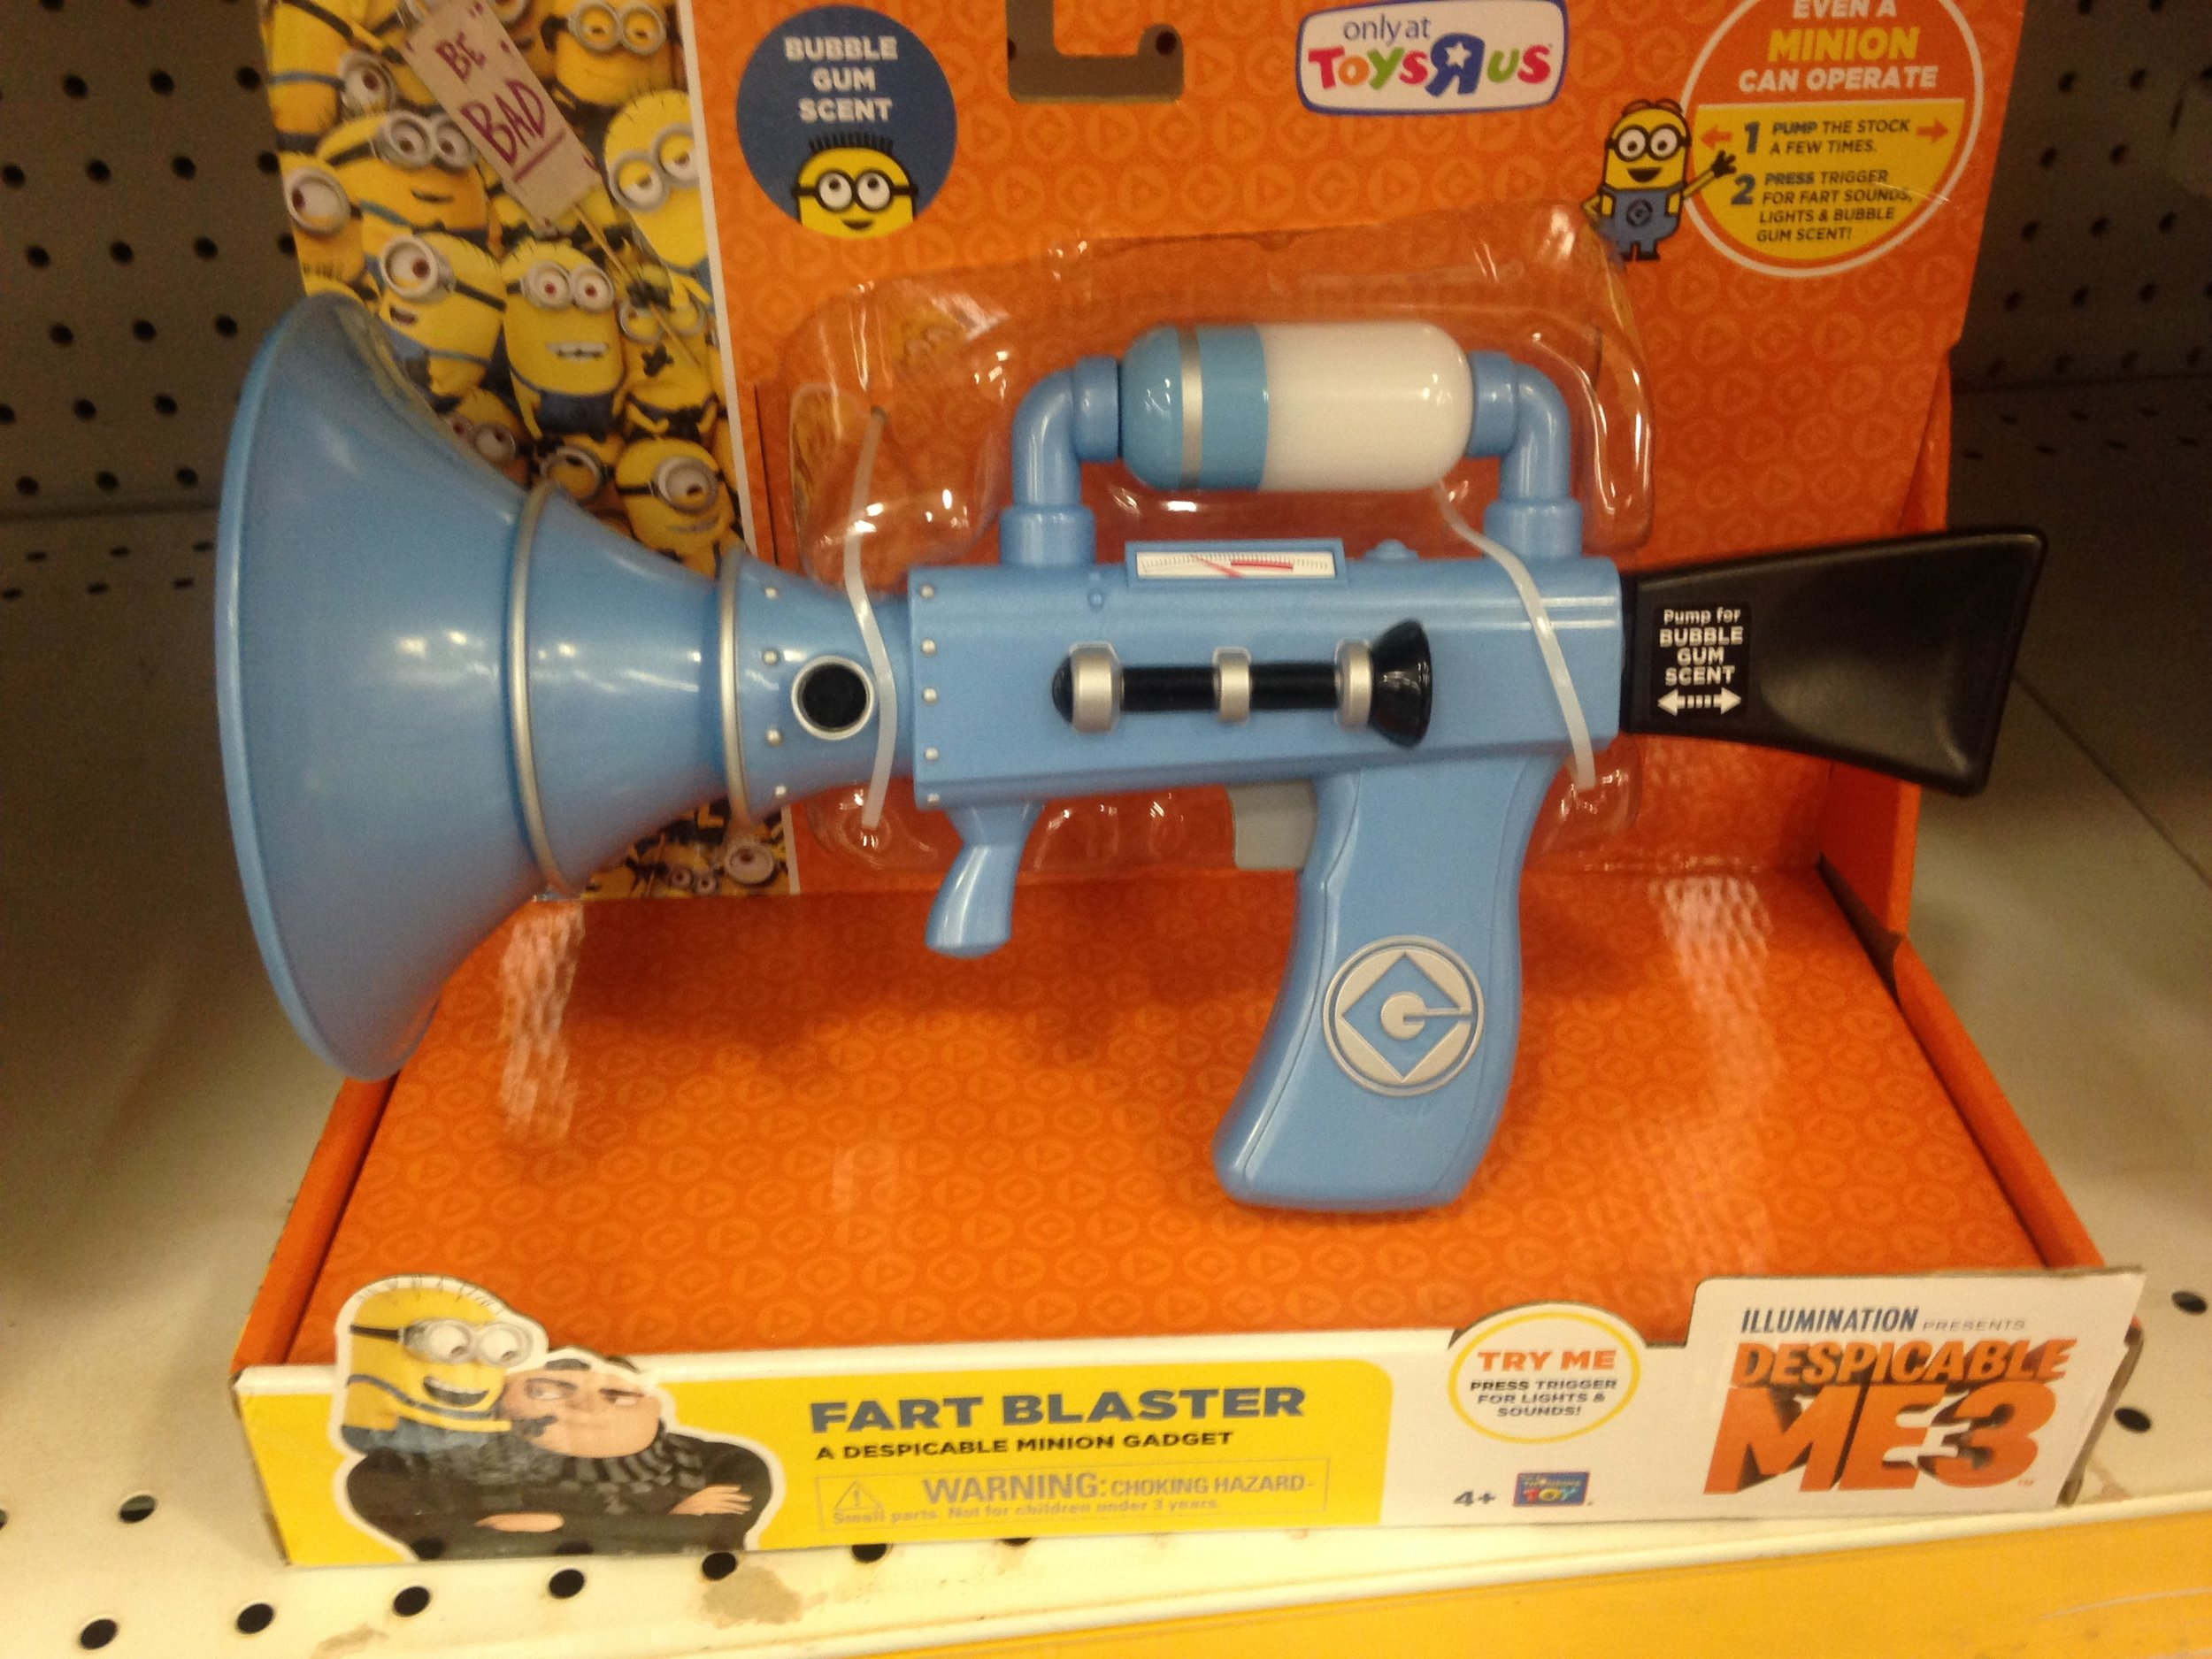 Want your friends with kids to hate you? Get them a fart blaster!